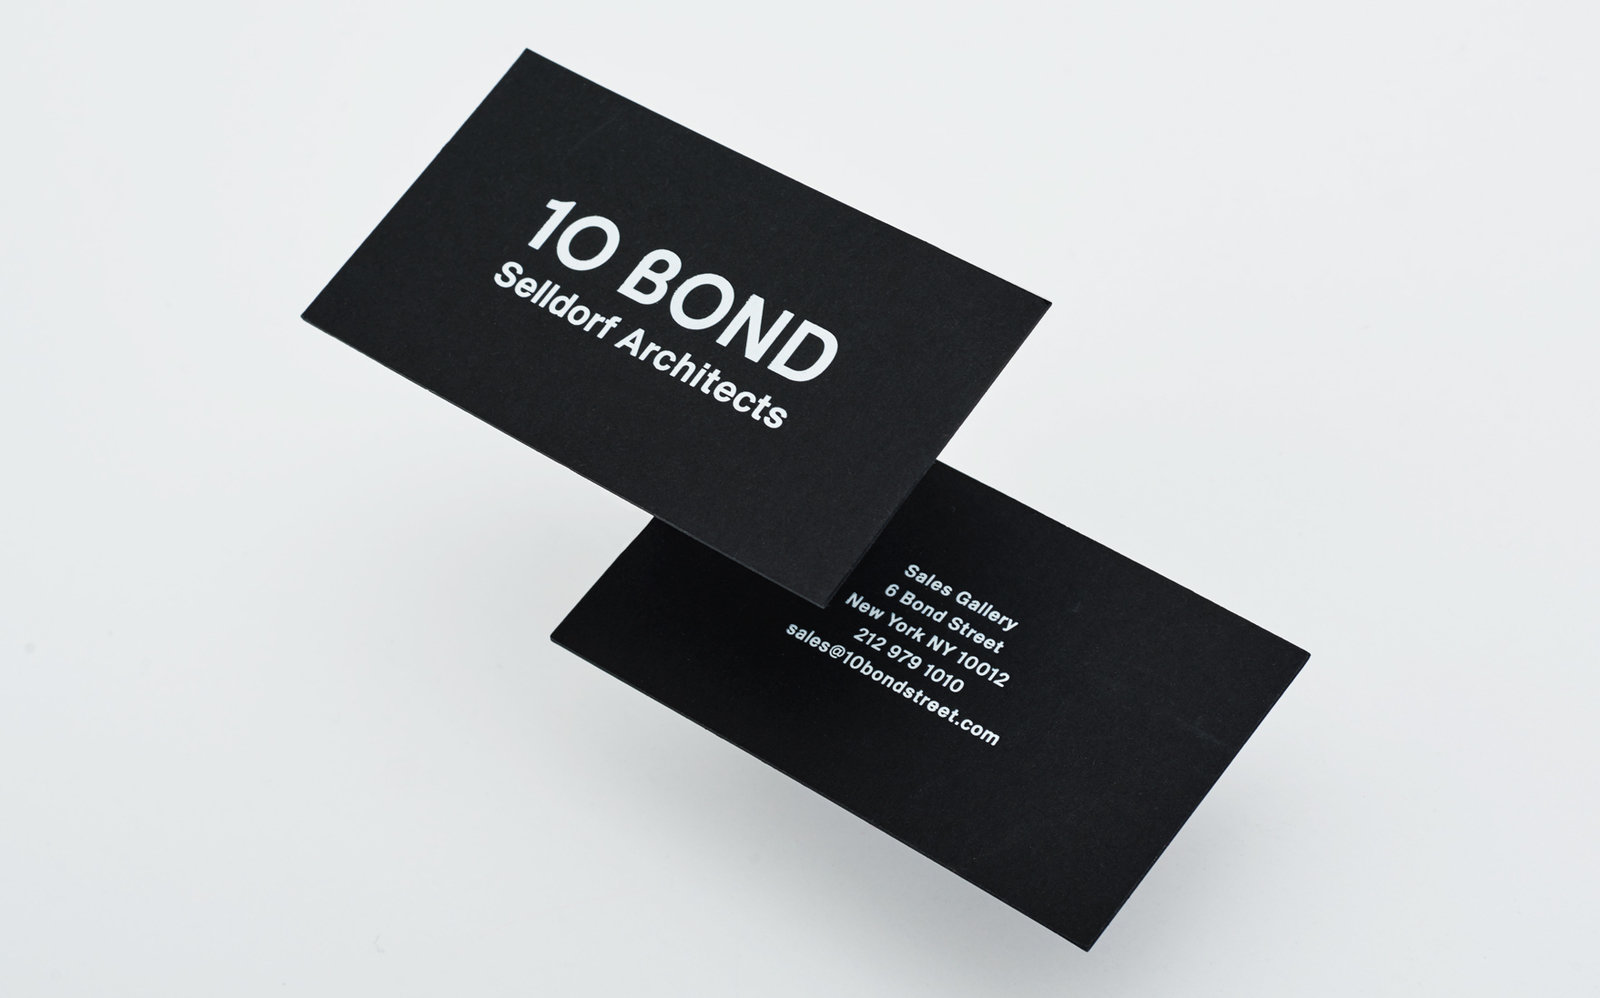 Watson and company 10 bond collateral business card 1600 153x33x1758x1097 q85